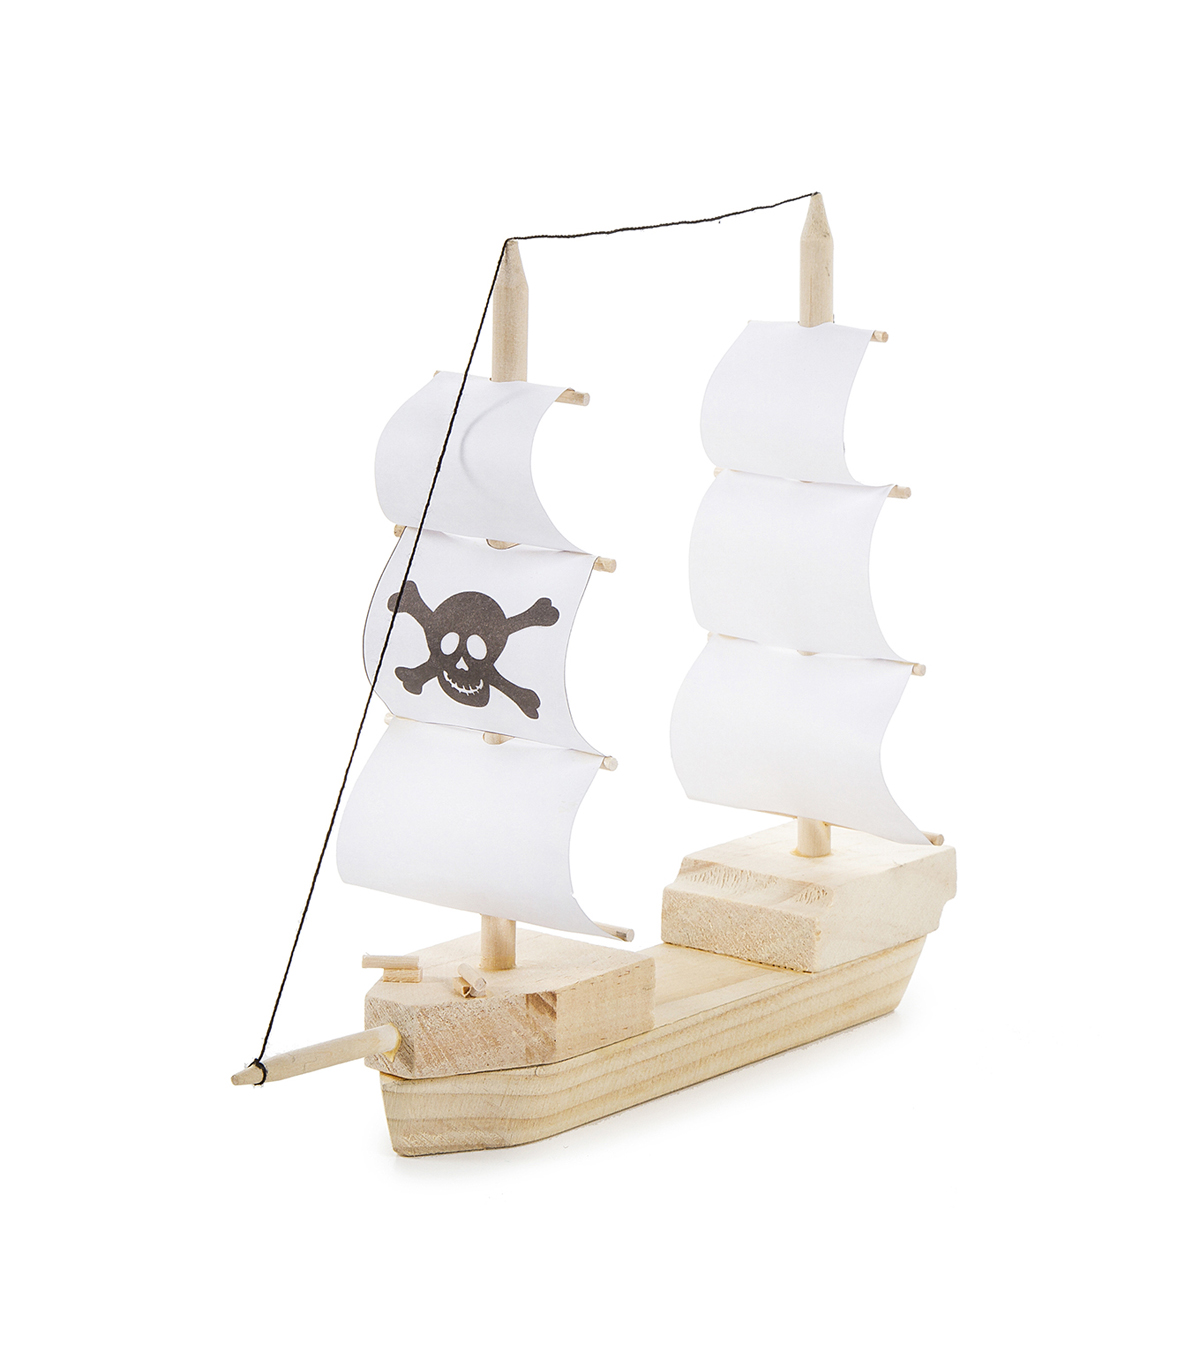 Wood Model Kit-Pirate Ship